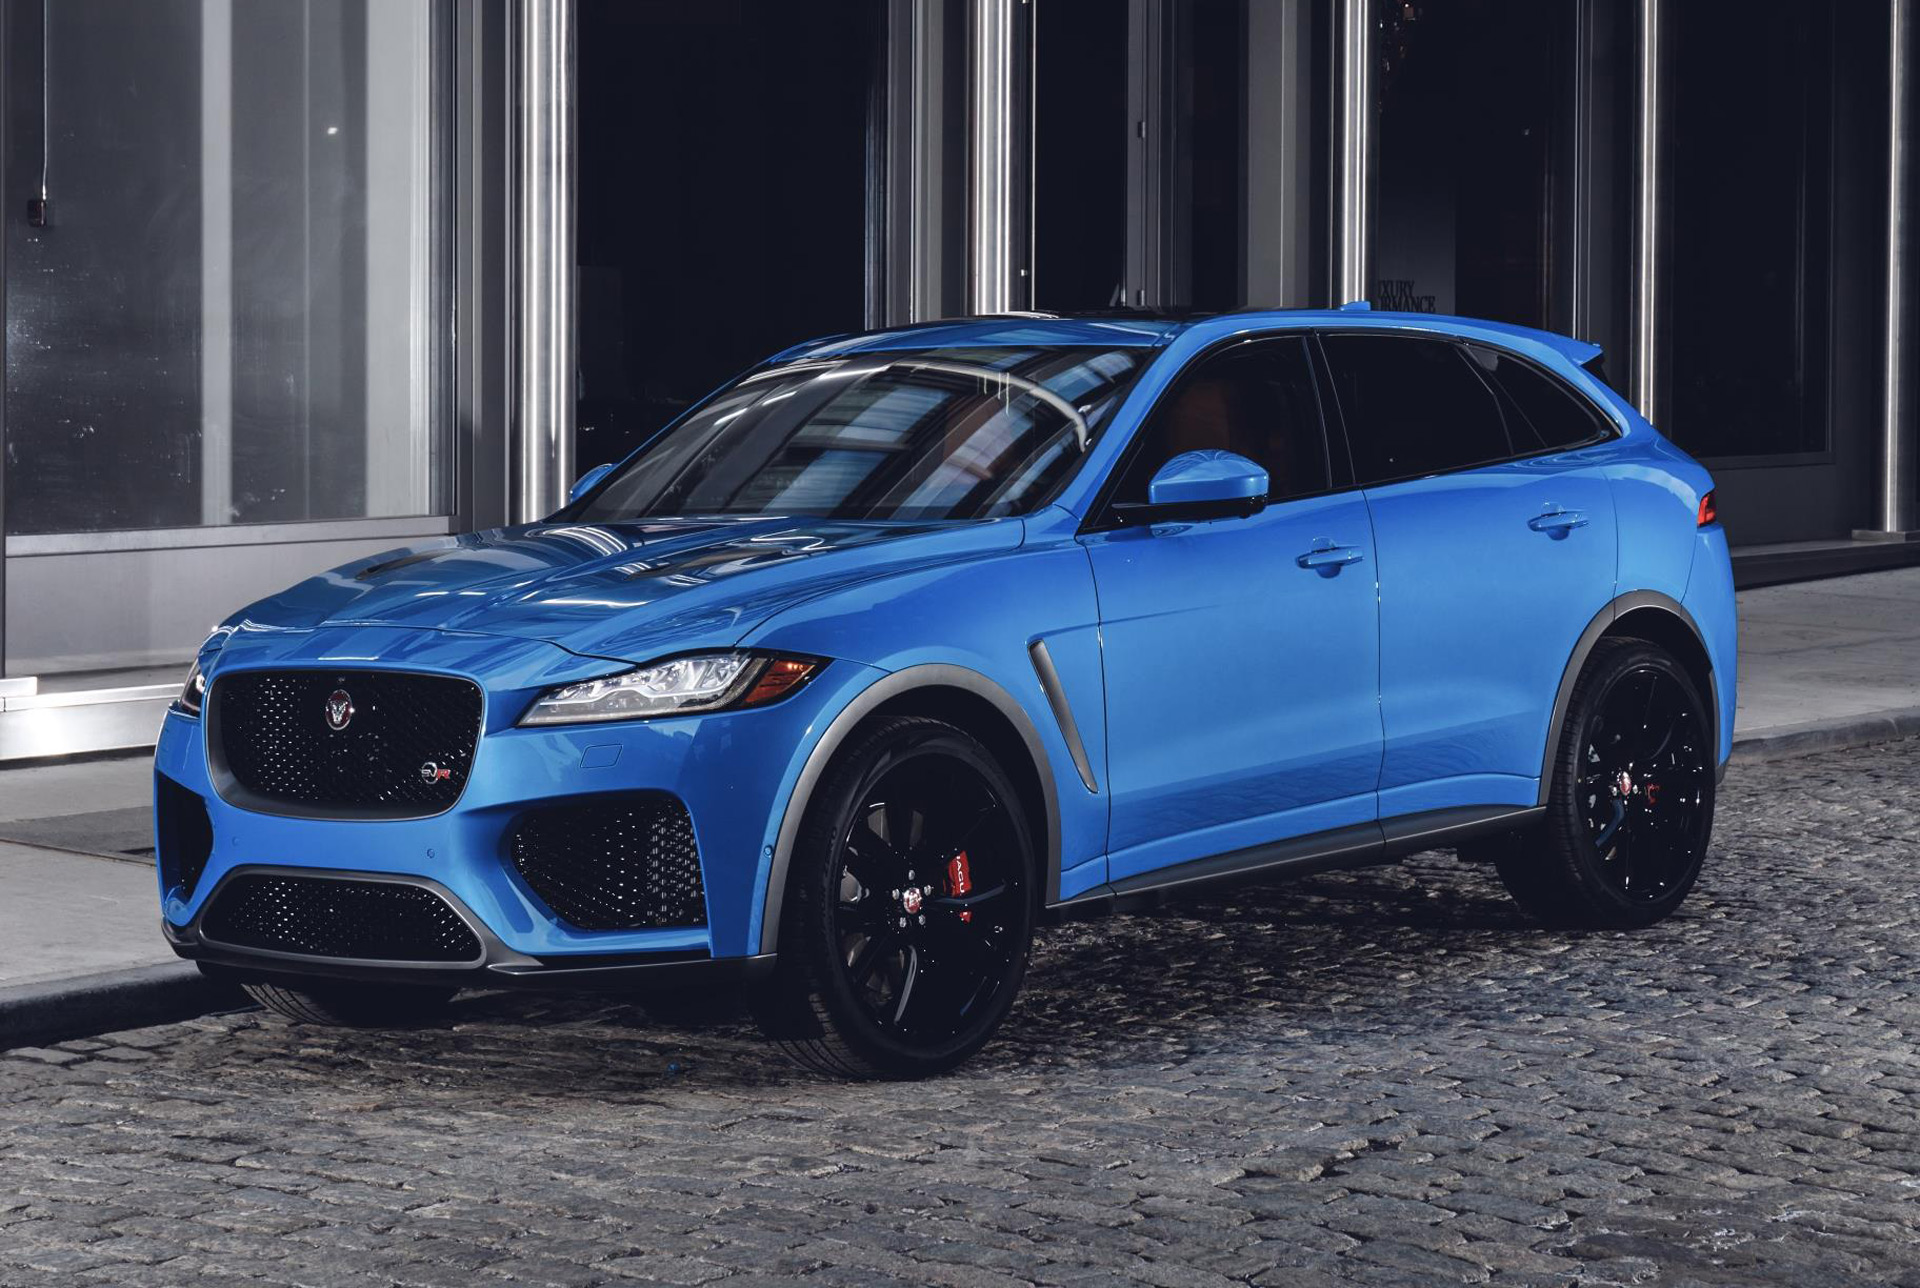 Jaguar Takes F-Pace Svr To The Next Level With Enhanced Performance And Design